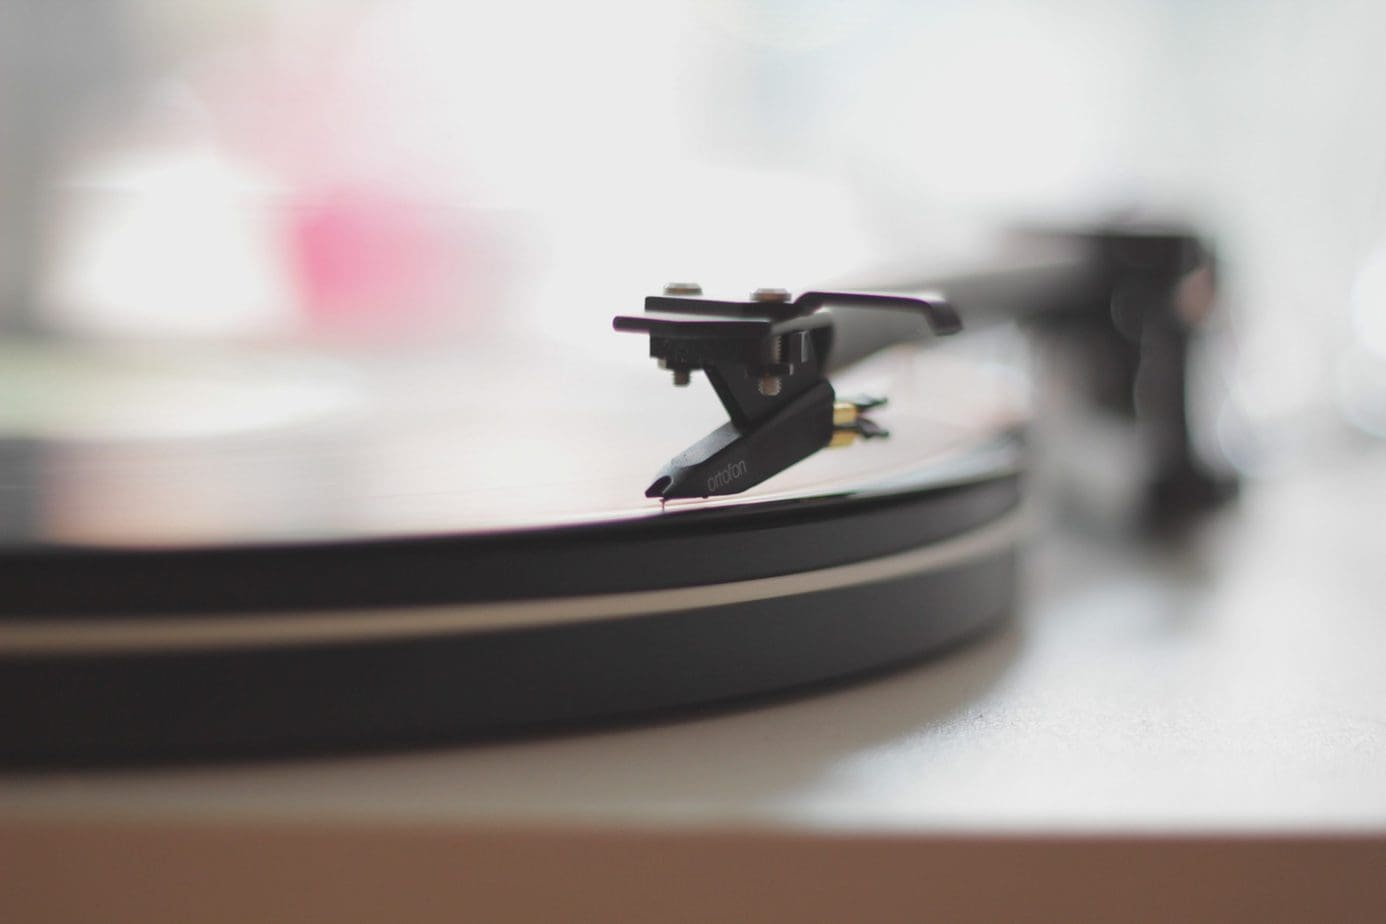 A Vinyl Record Player Stylus Up Close as it Begins to Play a Record.